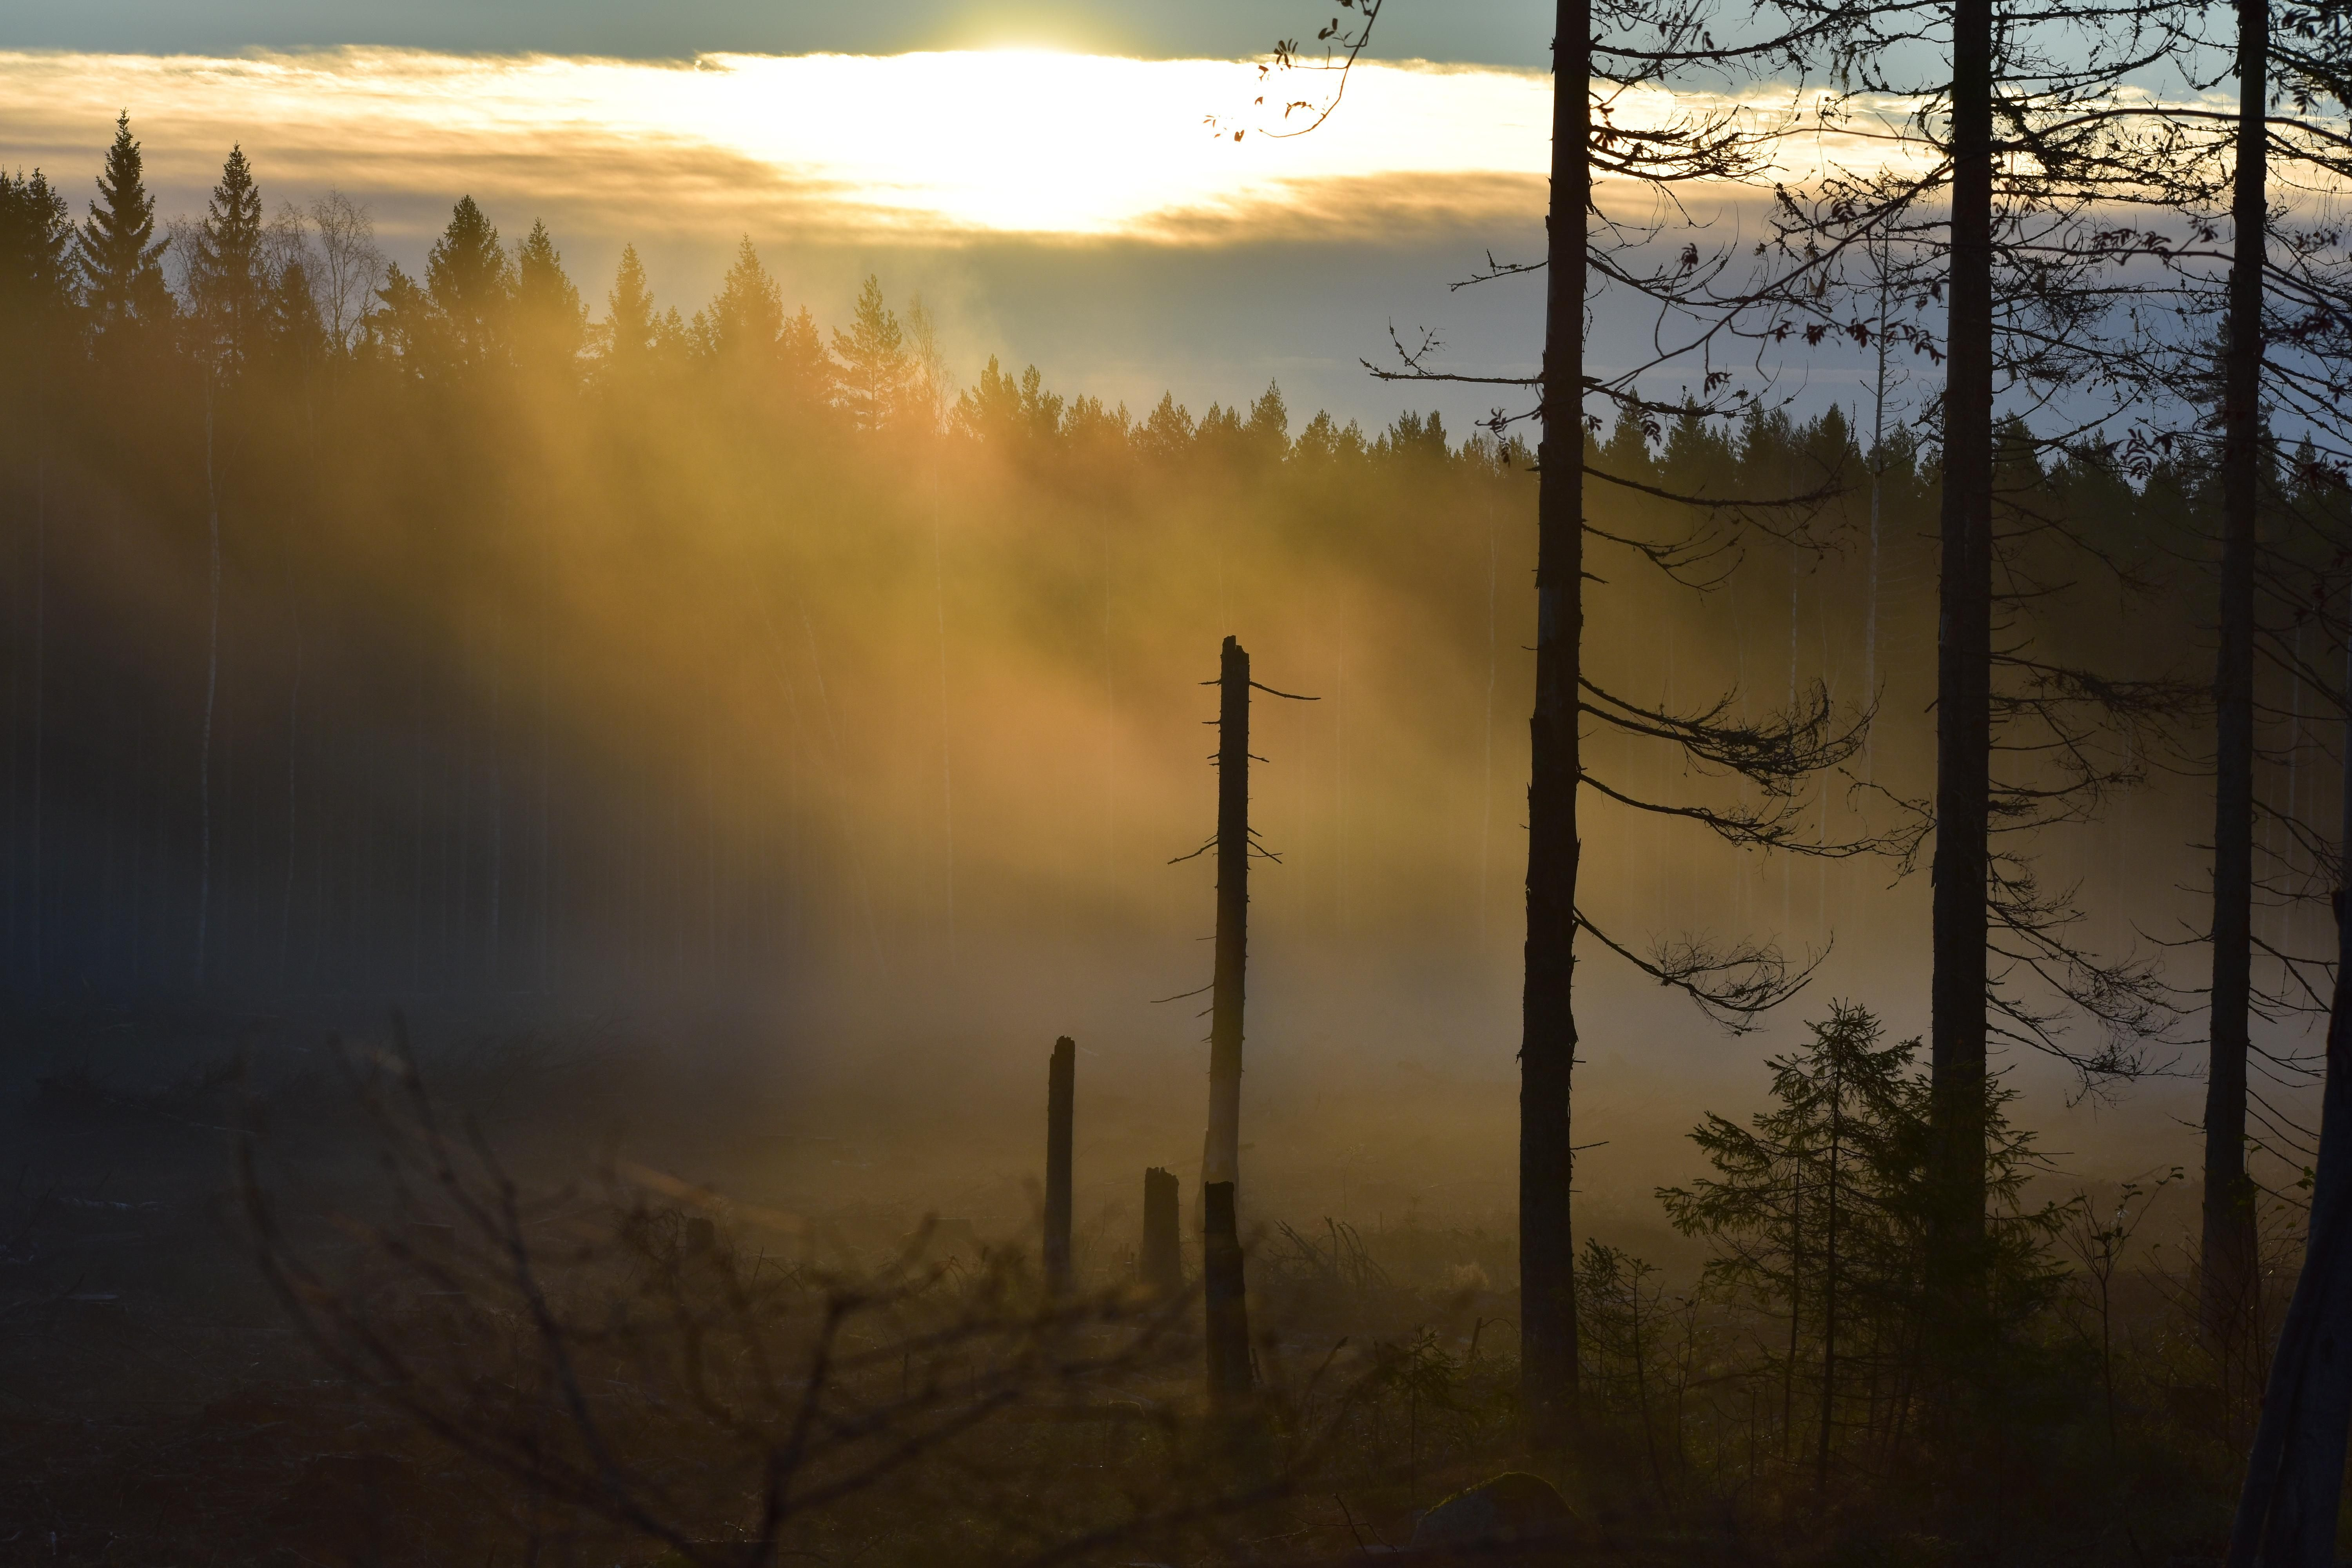 Mysterious Sunrise In The Woods In Varmland Sweden Oc 60004000 Amazing Beautiful Photograph Landscape Photography Nature Photography Landscape